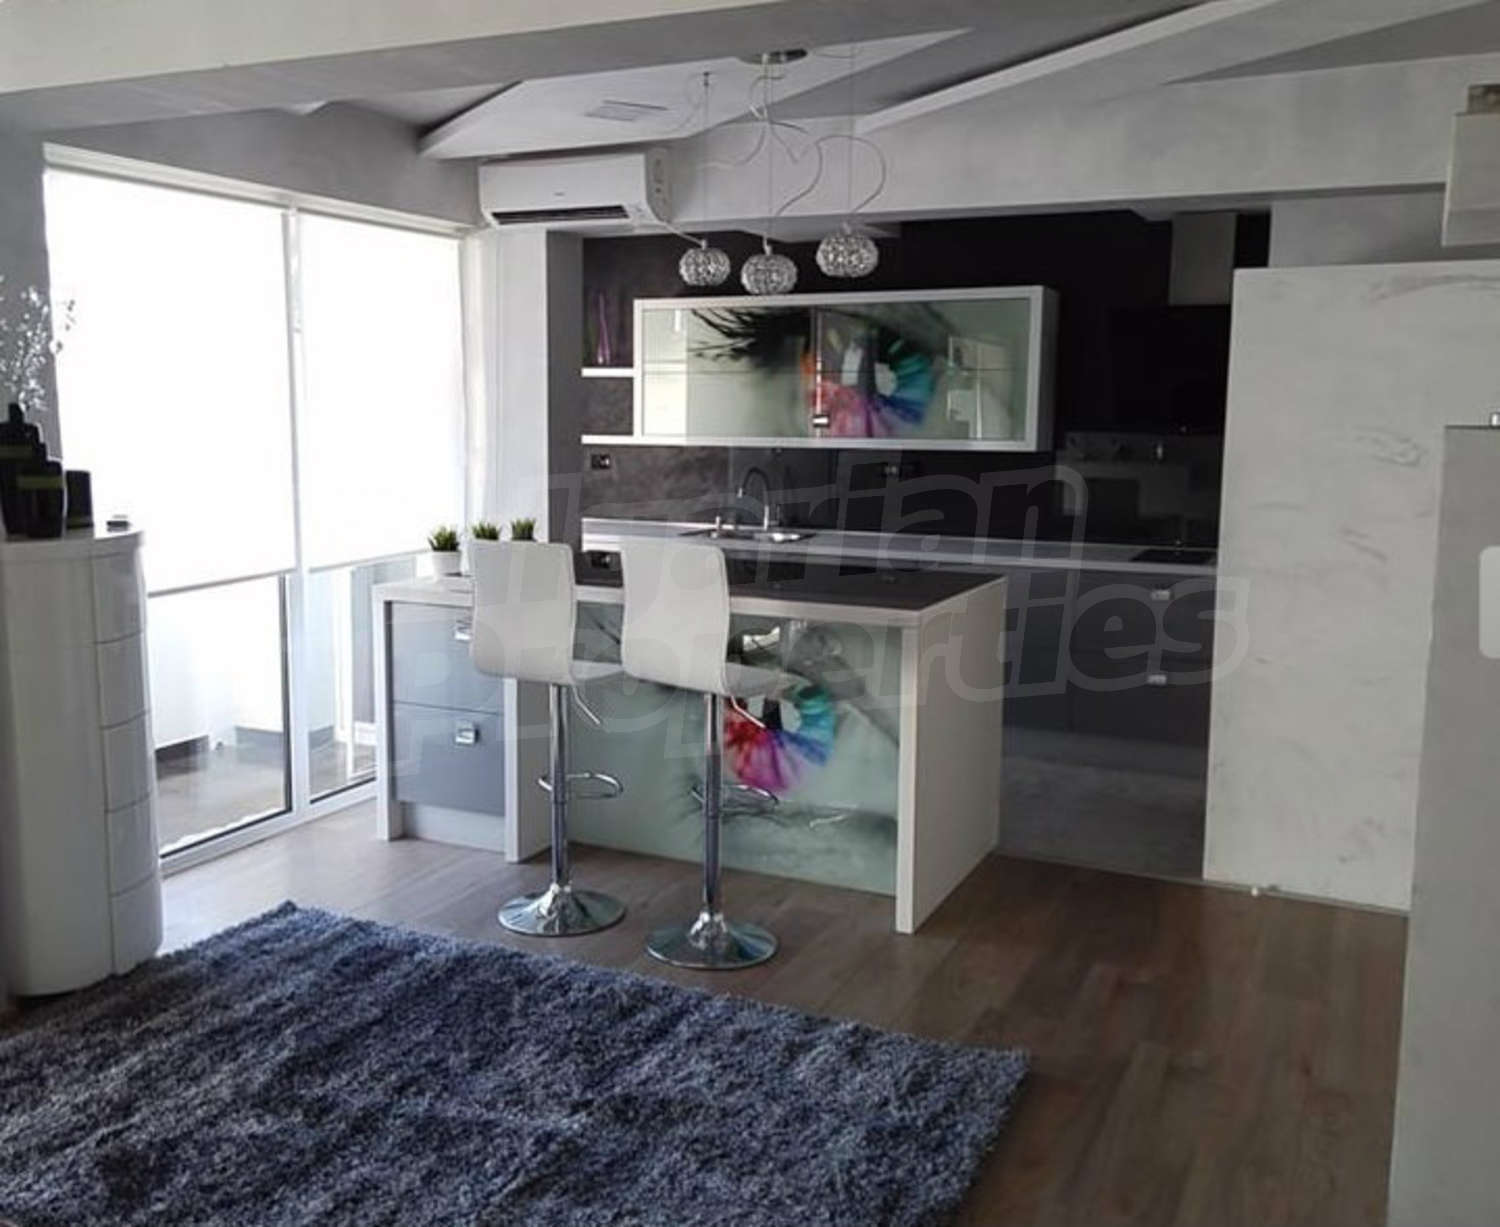 2-bedroom apartment for sale in Plovdiv, QuarterMarasha ...